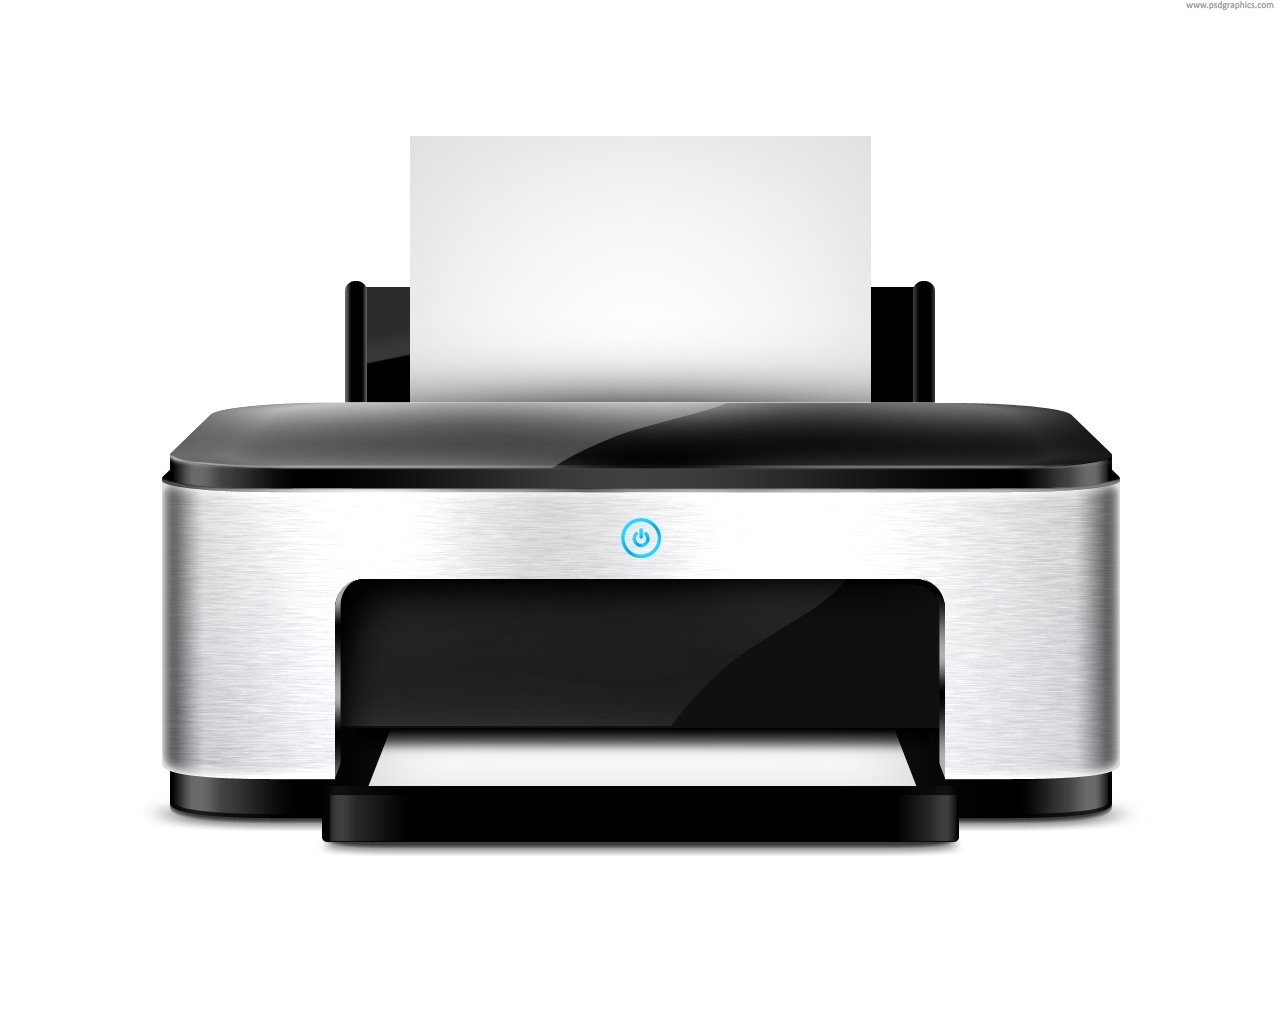 Printer Icon (PSD) | PSDGraphics image #1003